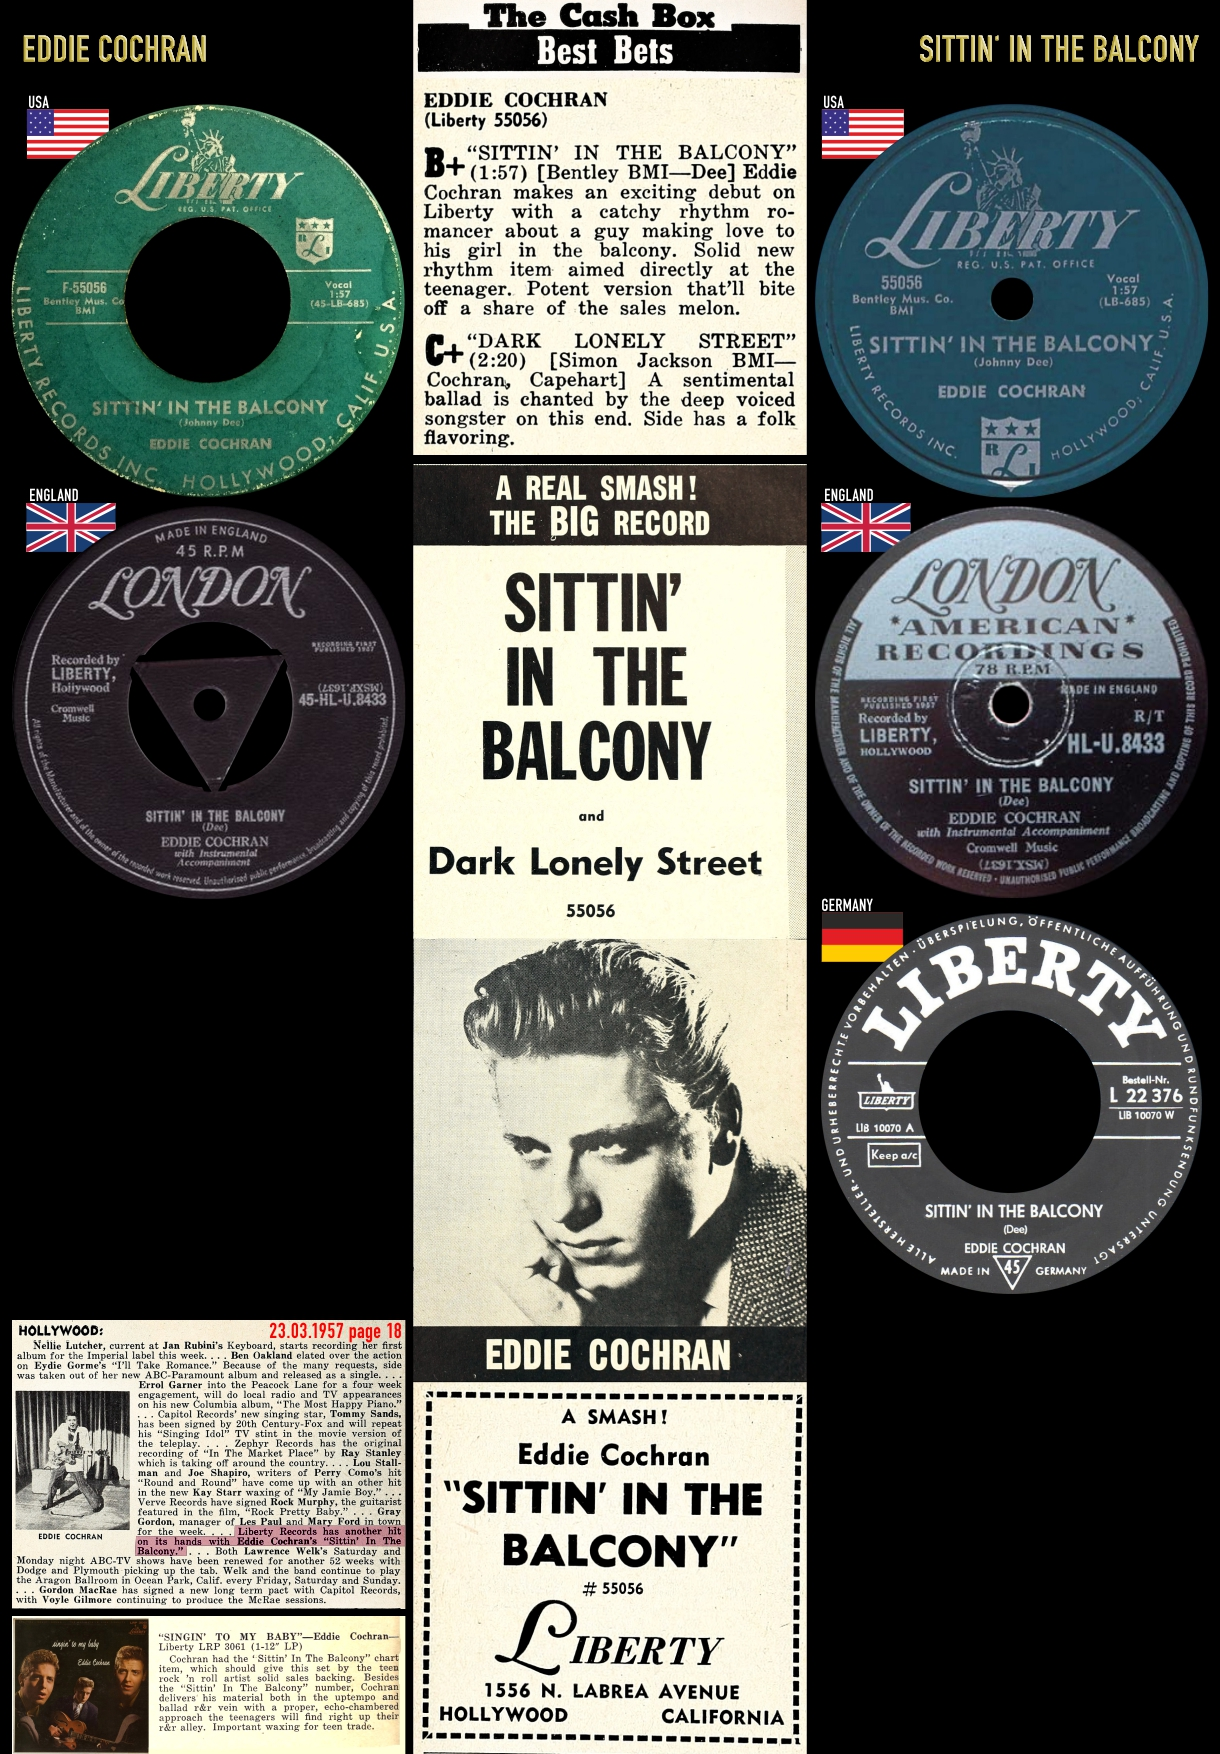 570323_Eddie Cochran_Sittin' In The Balcony